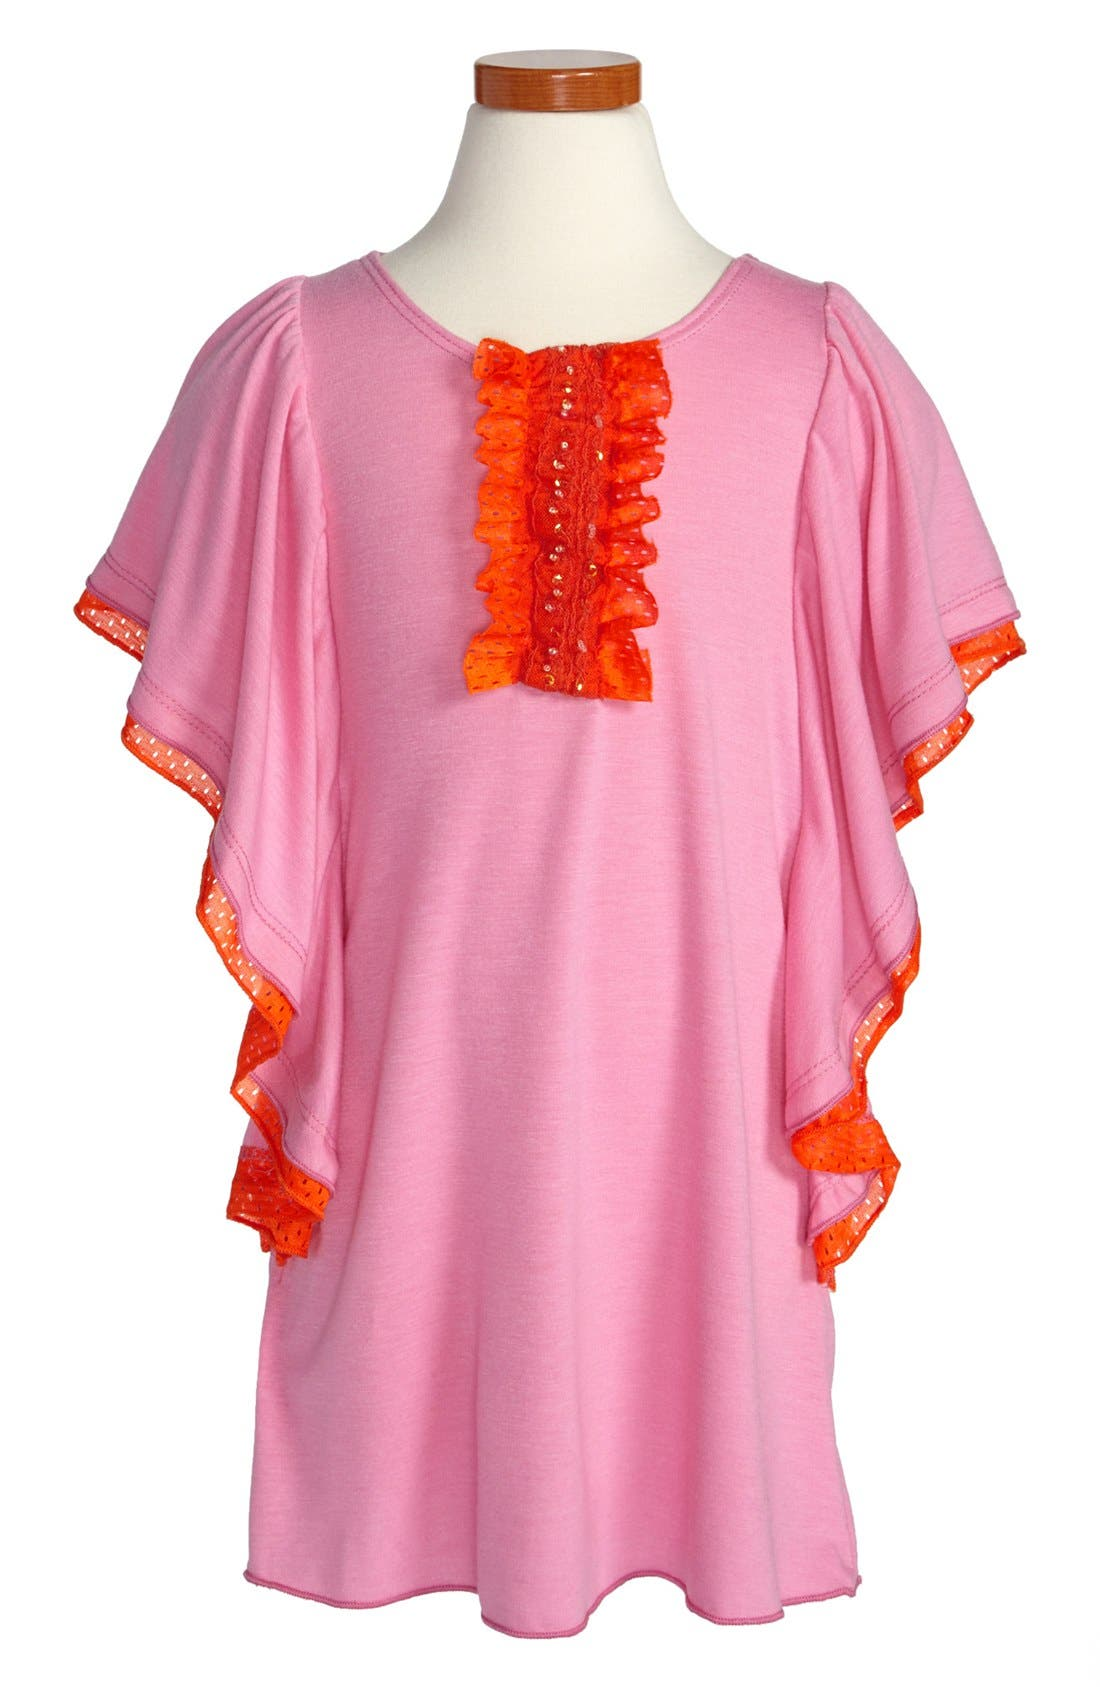 Main Image - Twirls & Twigs Flutter Sleeve Dress (Toddler Girls)